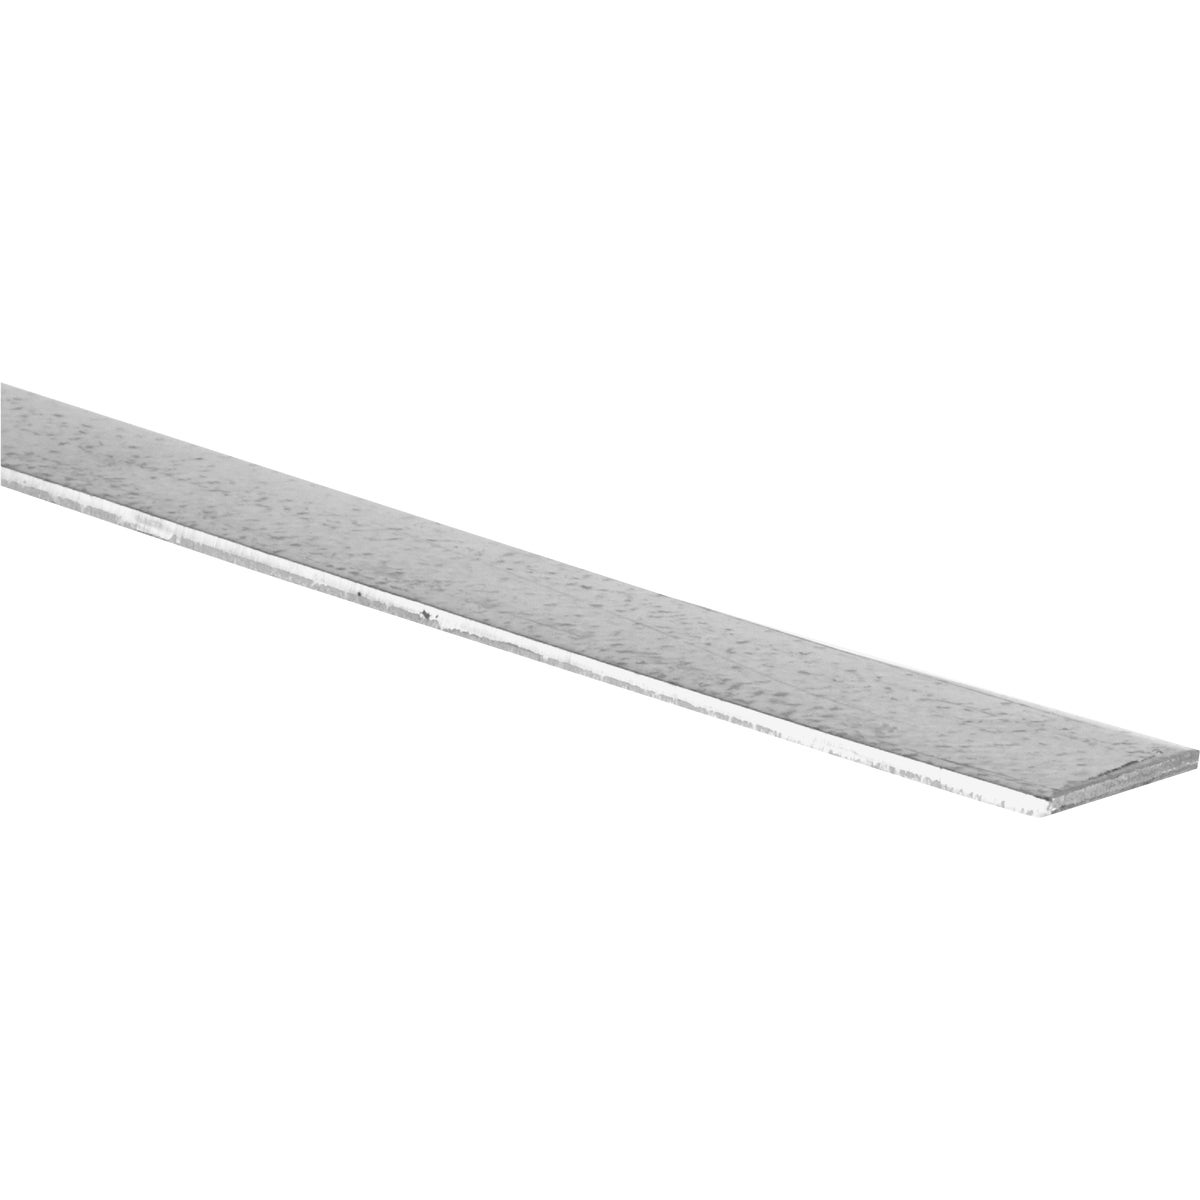 3/4X3' STEEL FLAT PLATE - N179986 by National Mfg Co